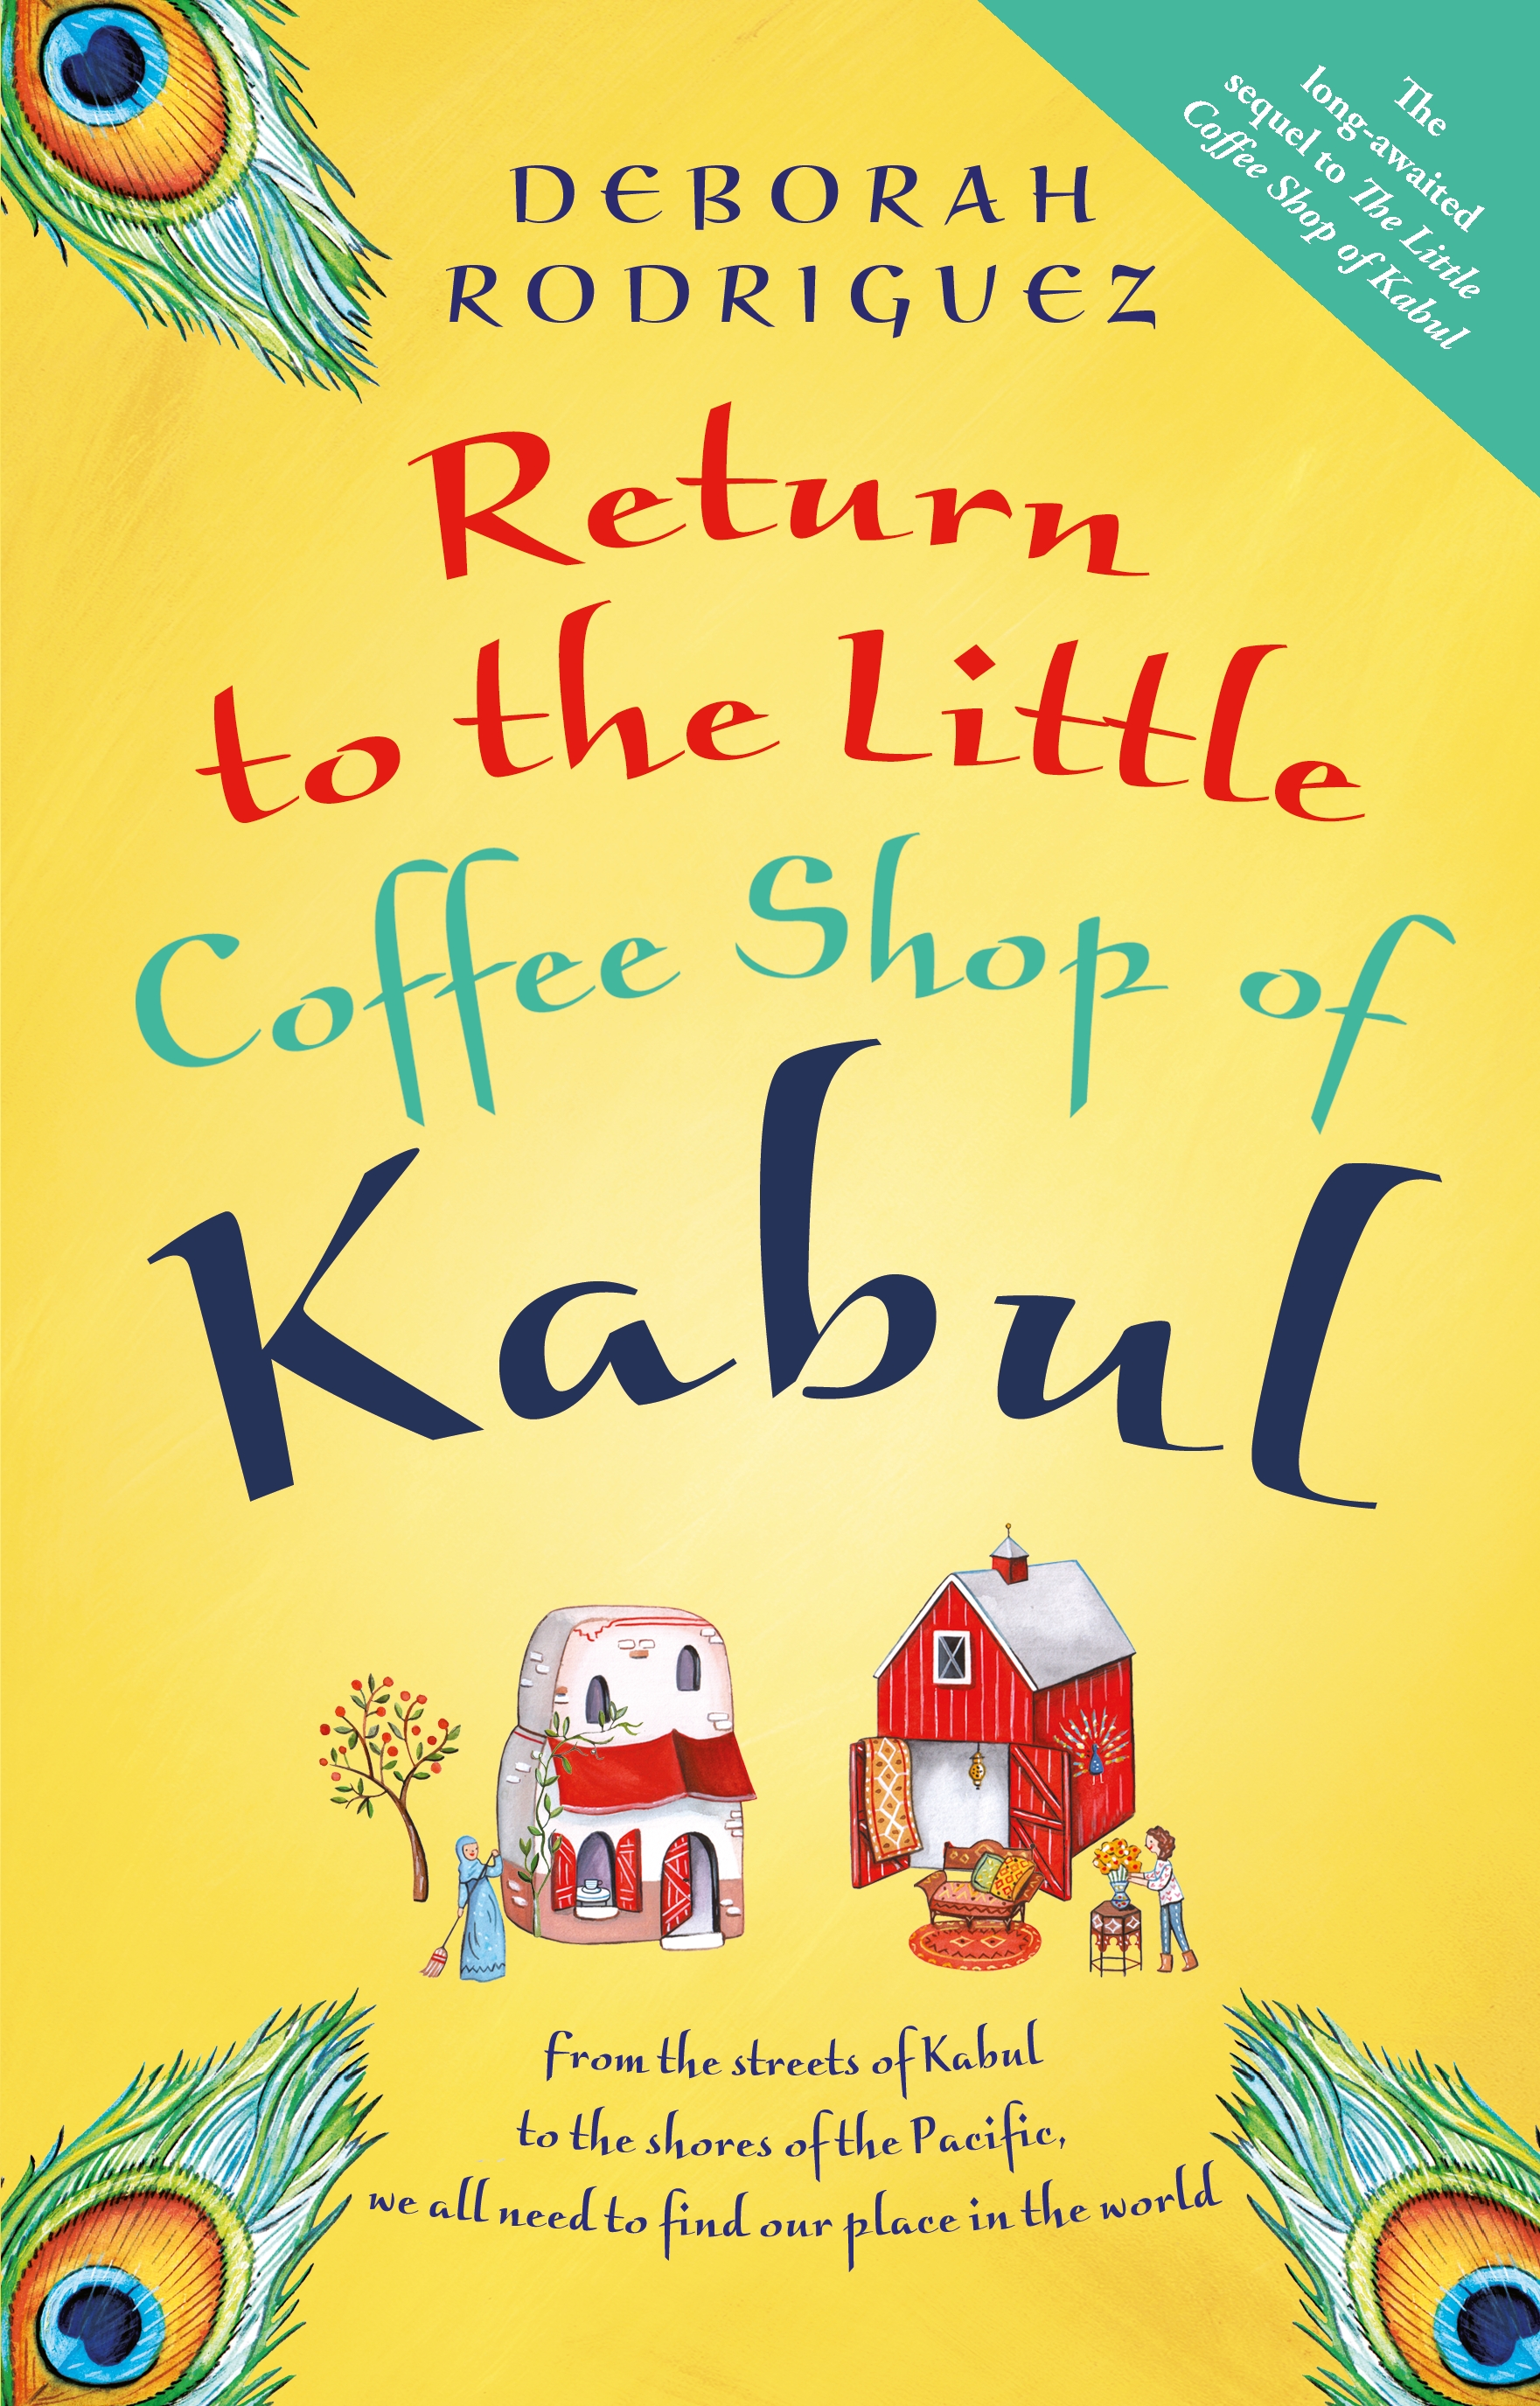 Return To The Little Coffee Shop Of Kabul By Deborah Rodriguez - Where is kabul